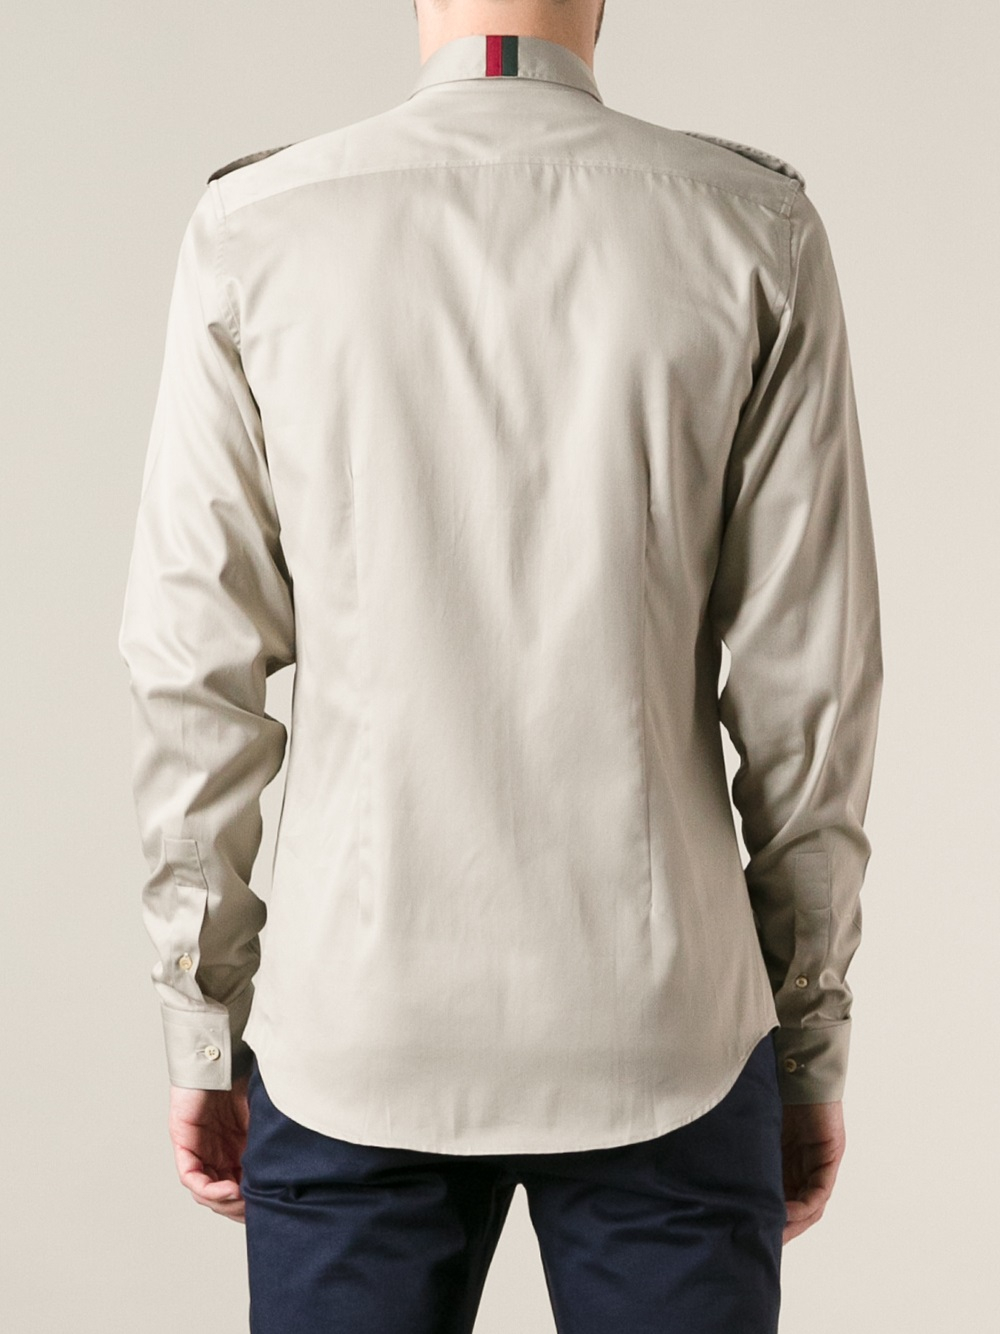 Lyst - Gucci Military Style Shirt In Natural For Men-9349